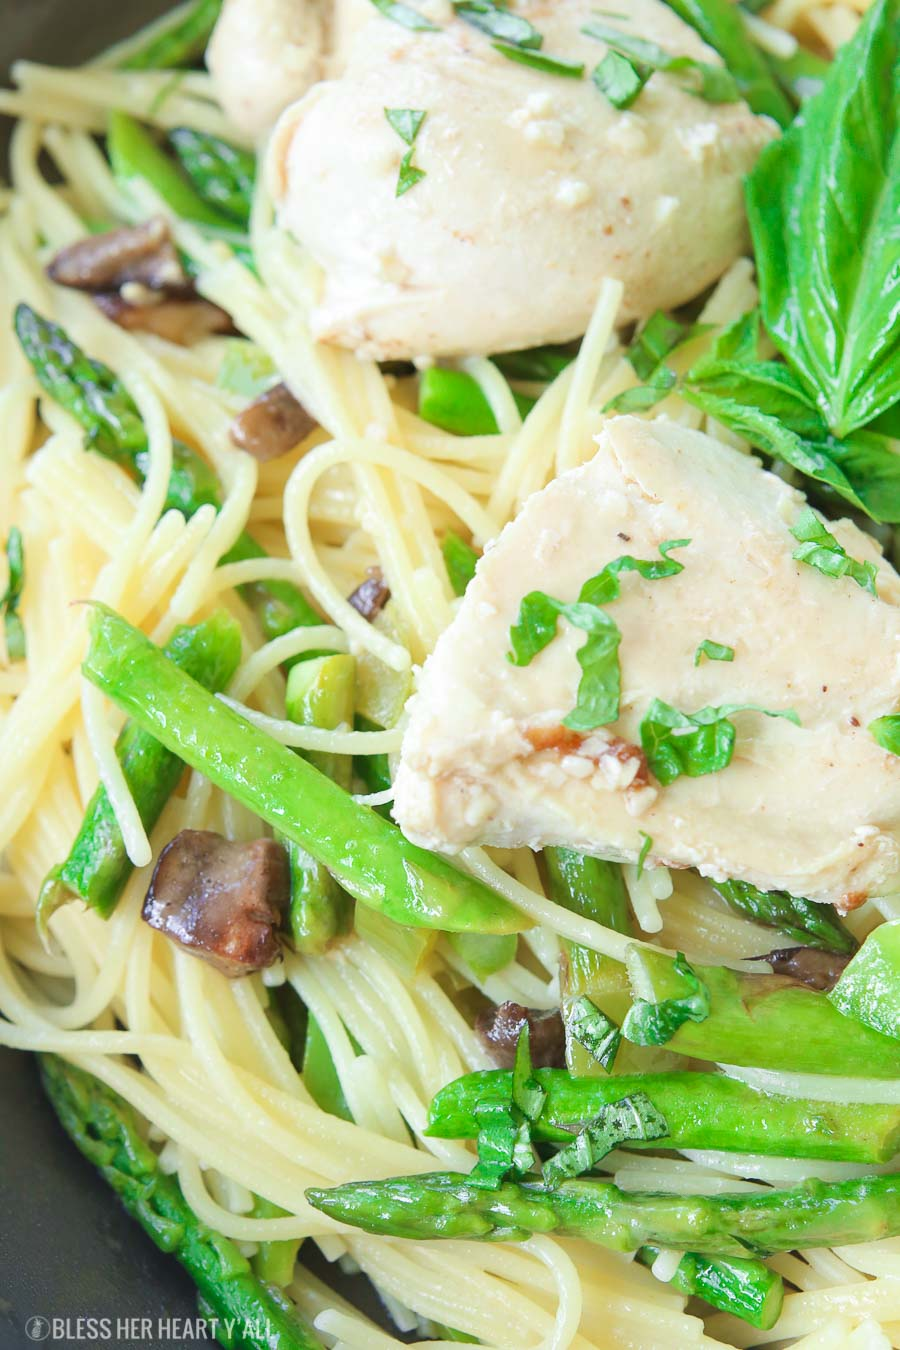 This chicken pasta in garlic basil butter sauce recipe makes for an easy gluten free dinner for busy weeknights. Pasta and chicken is tossed with the vegetables you already have in your kitchen and drizzled in a sizzling light and creamy garlic butter sauce with extra hints of basil and lemon! image 7